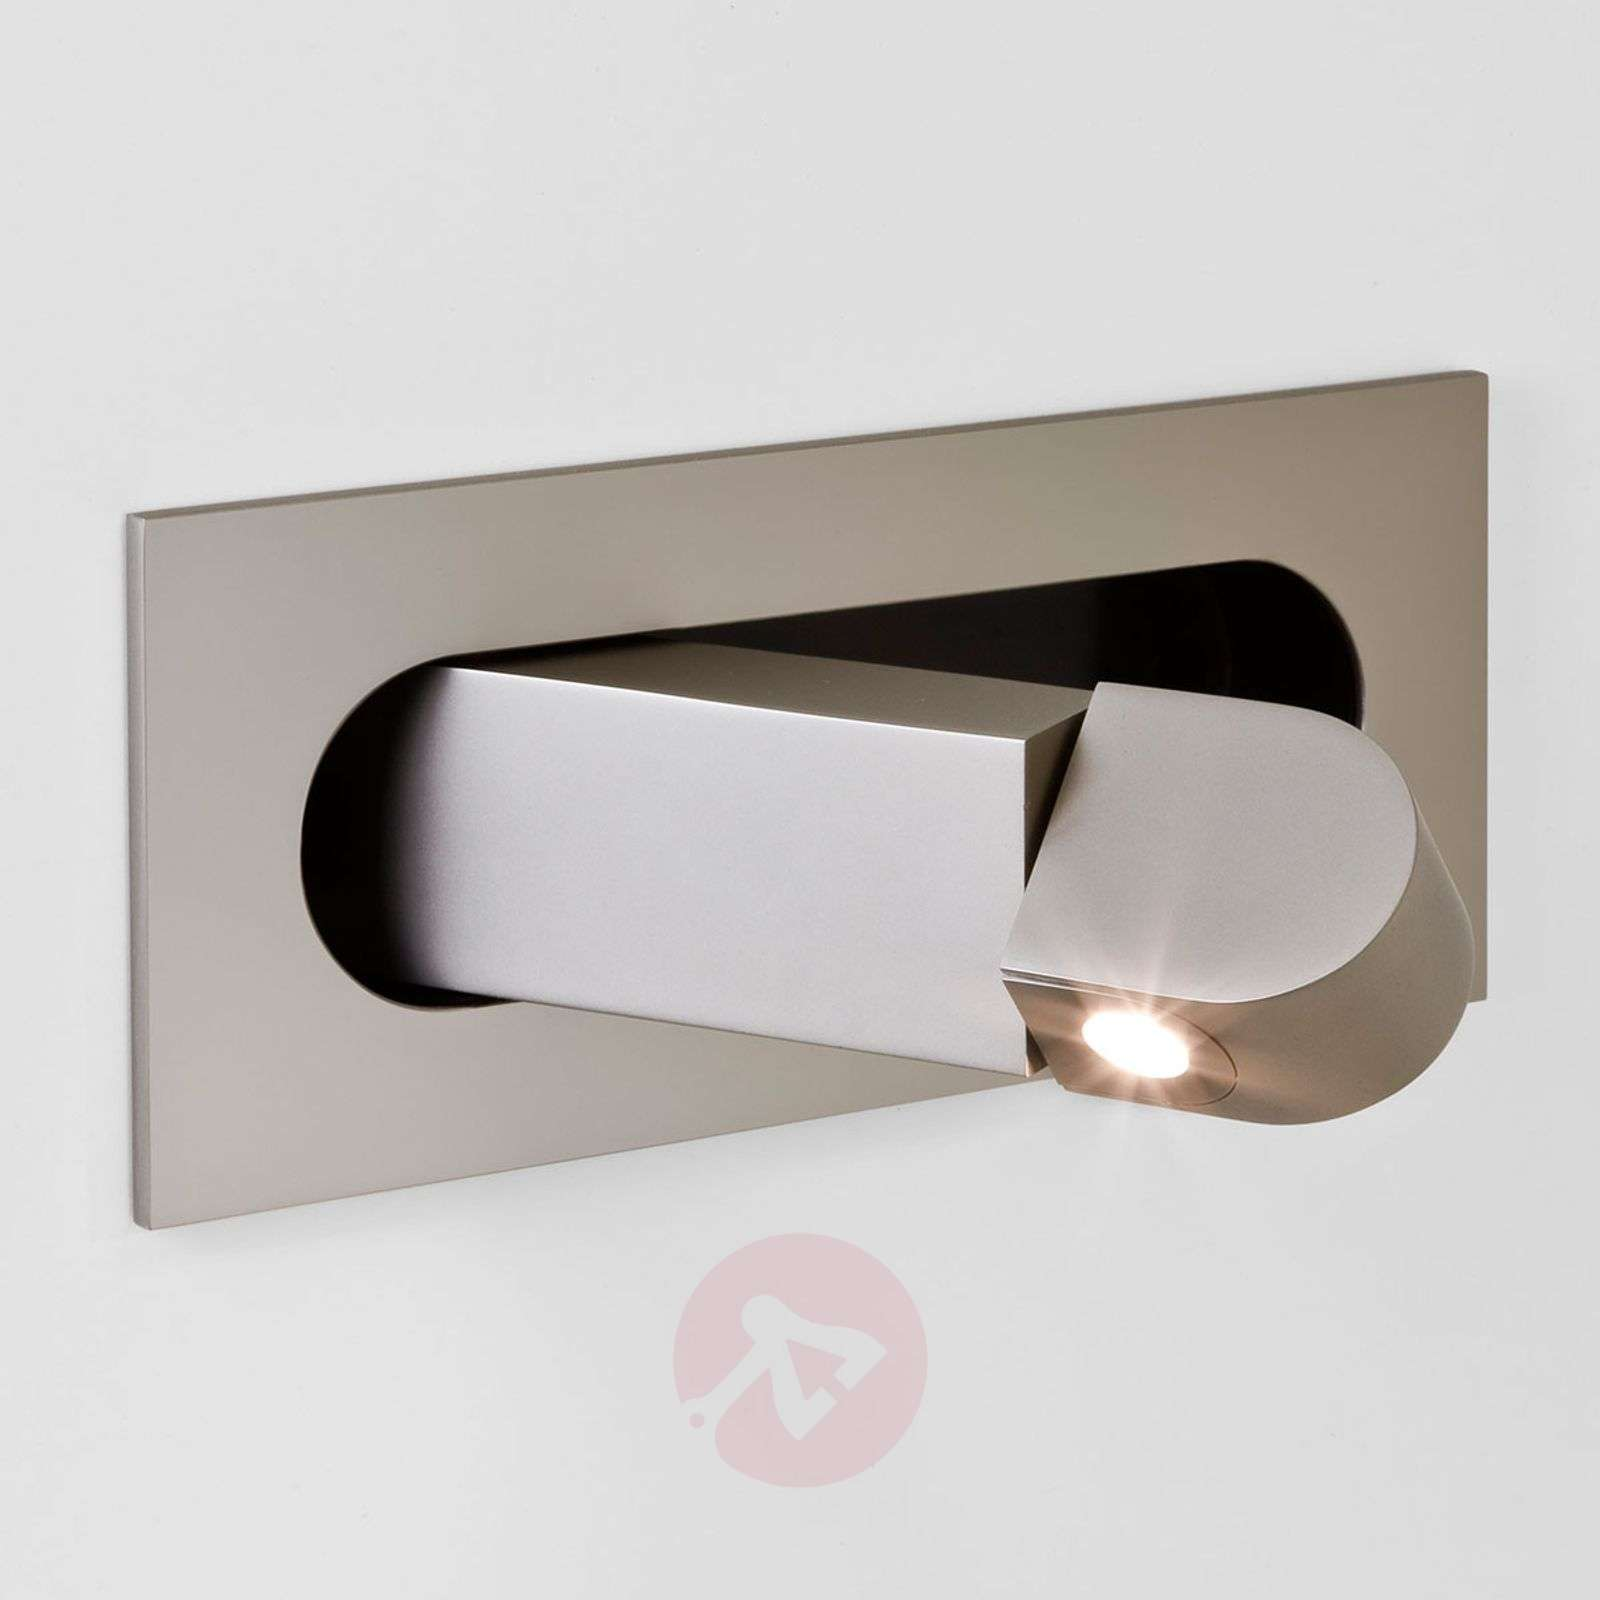 Applique LED Digit comme liseuse, nickel-1020476-04